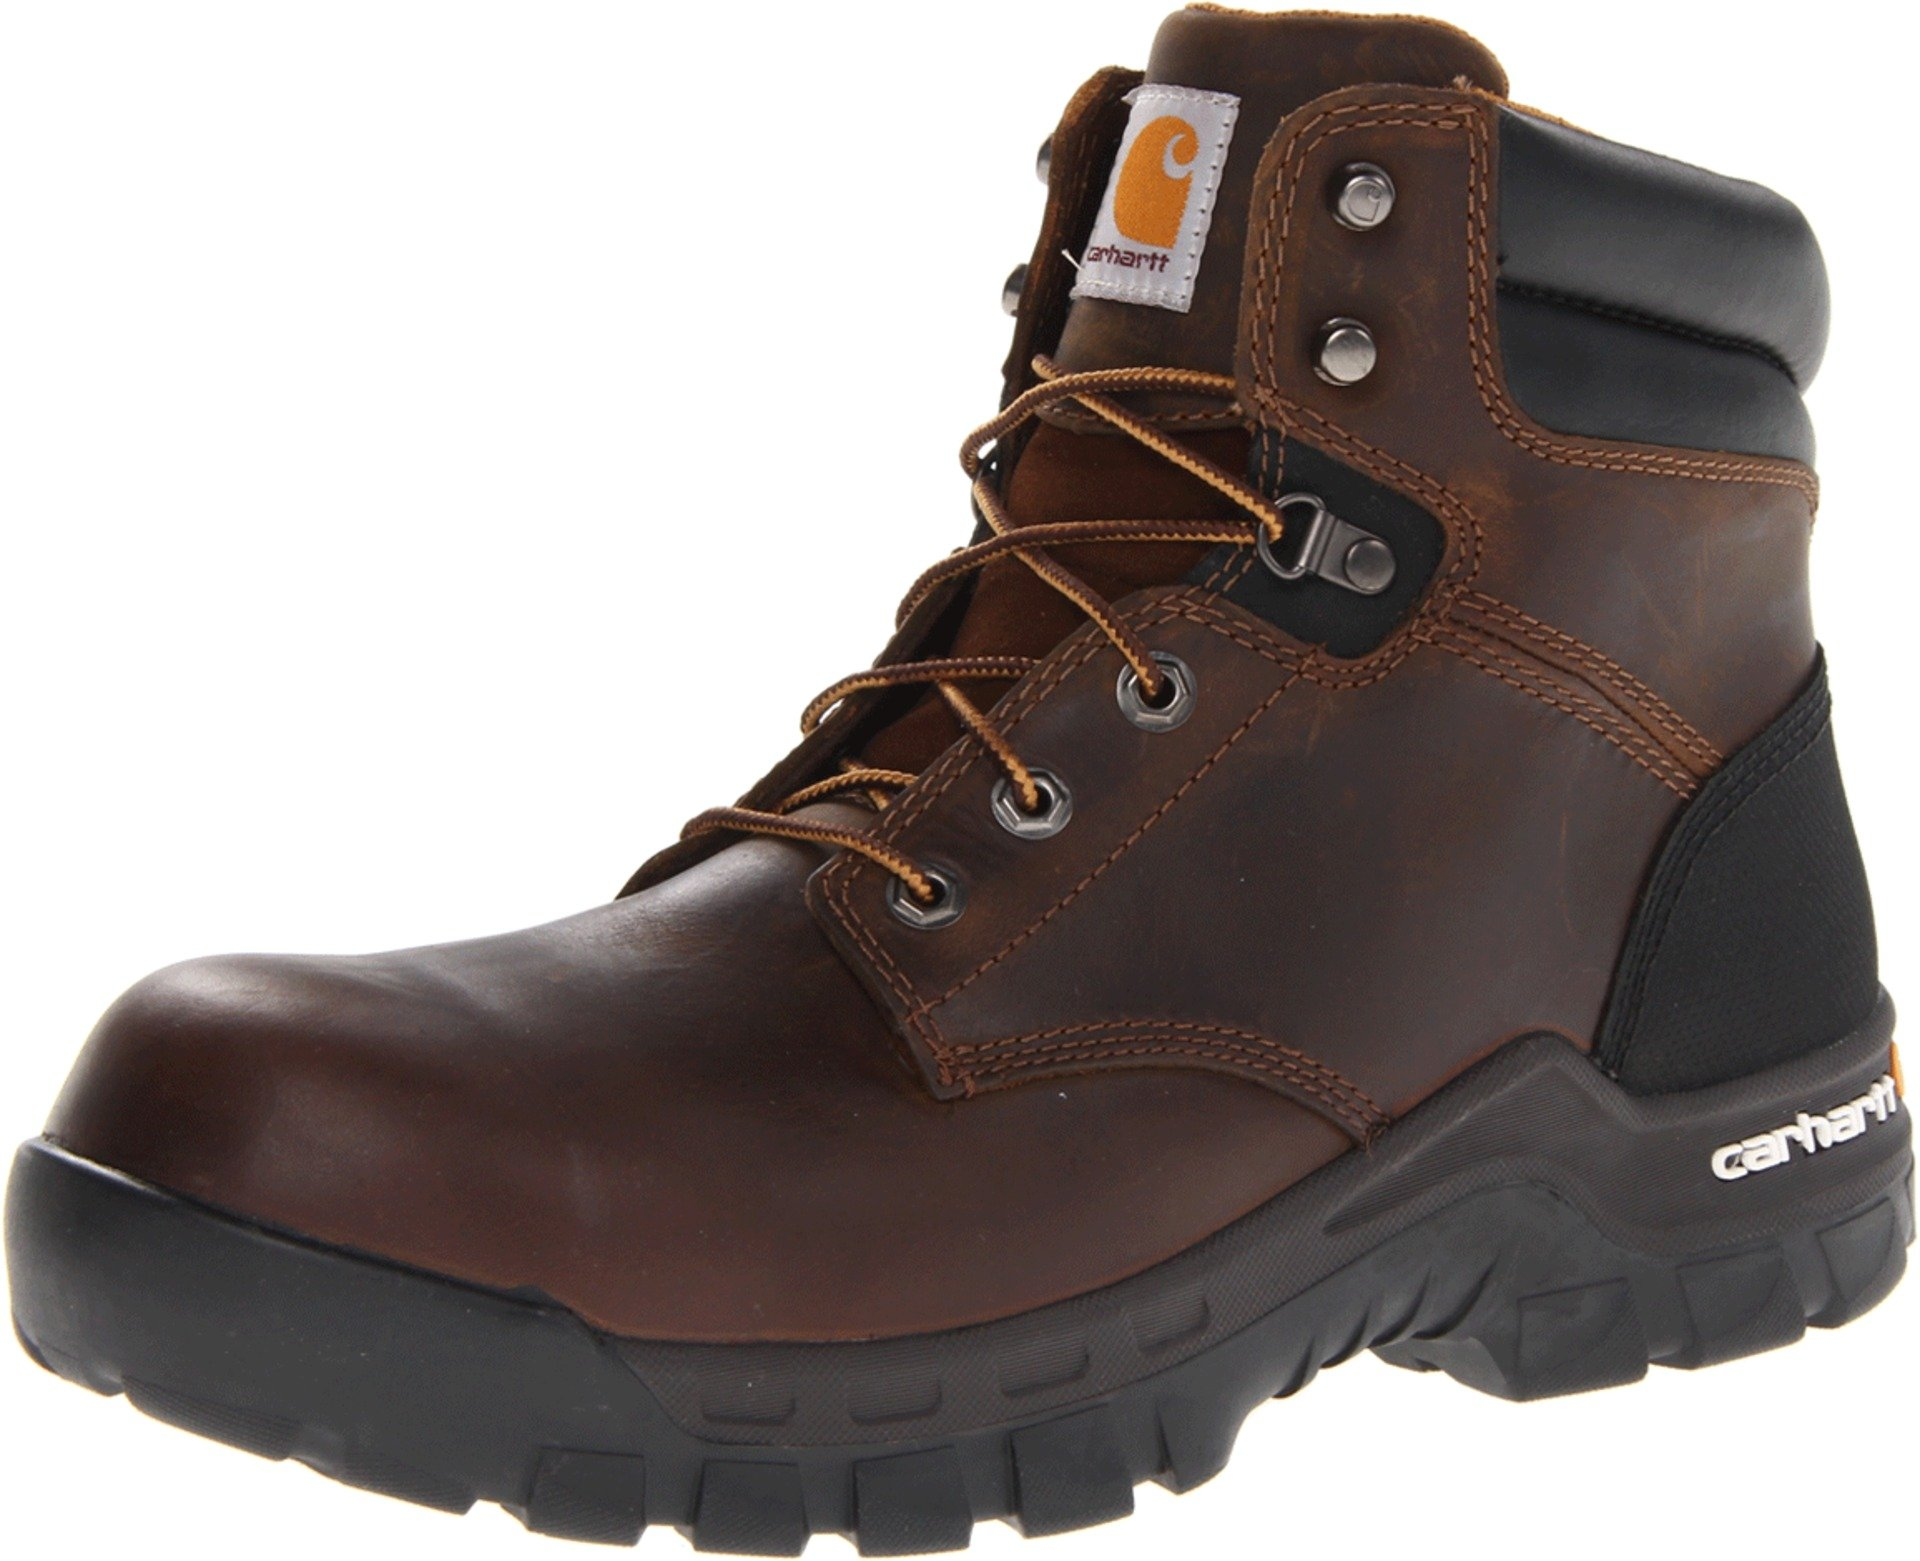 Carhartt Men's 6'' Rugged Flex Waterproof Breathable Composite Toe Leather Work Boot CMF6366,Brown Oil Tanned Leather,11 M US